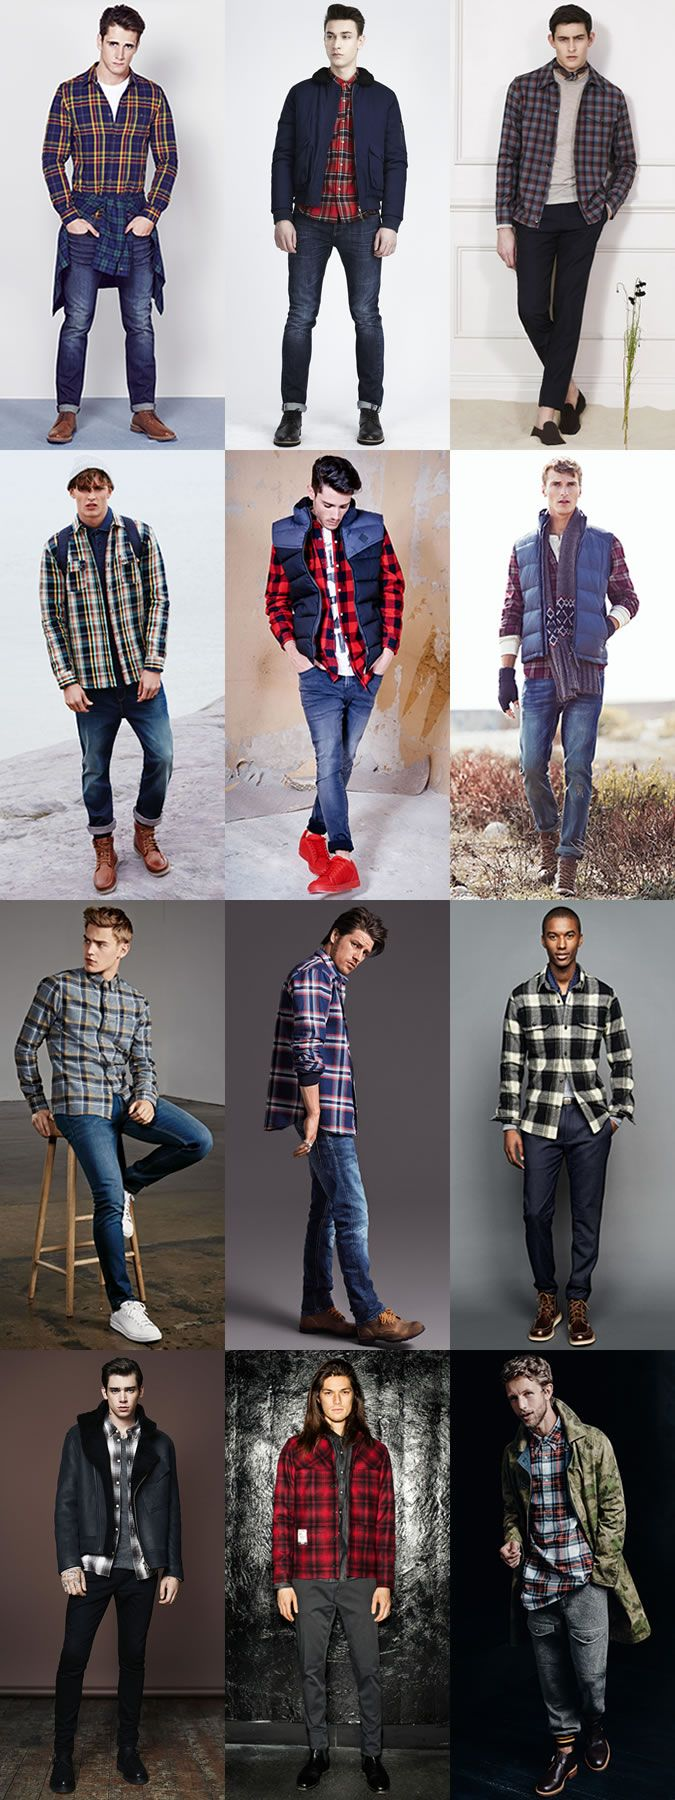 Men's Autumn Wardrobe Essentials: Flannel Shirt Autumn Outfit Inspiration Lookbook